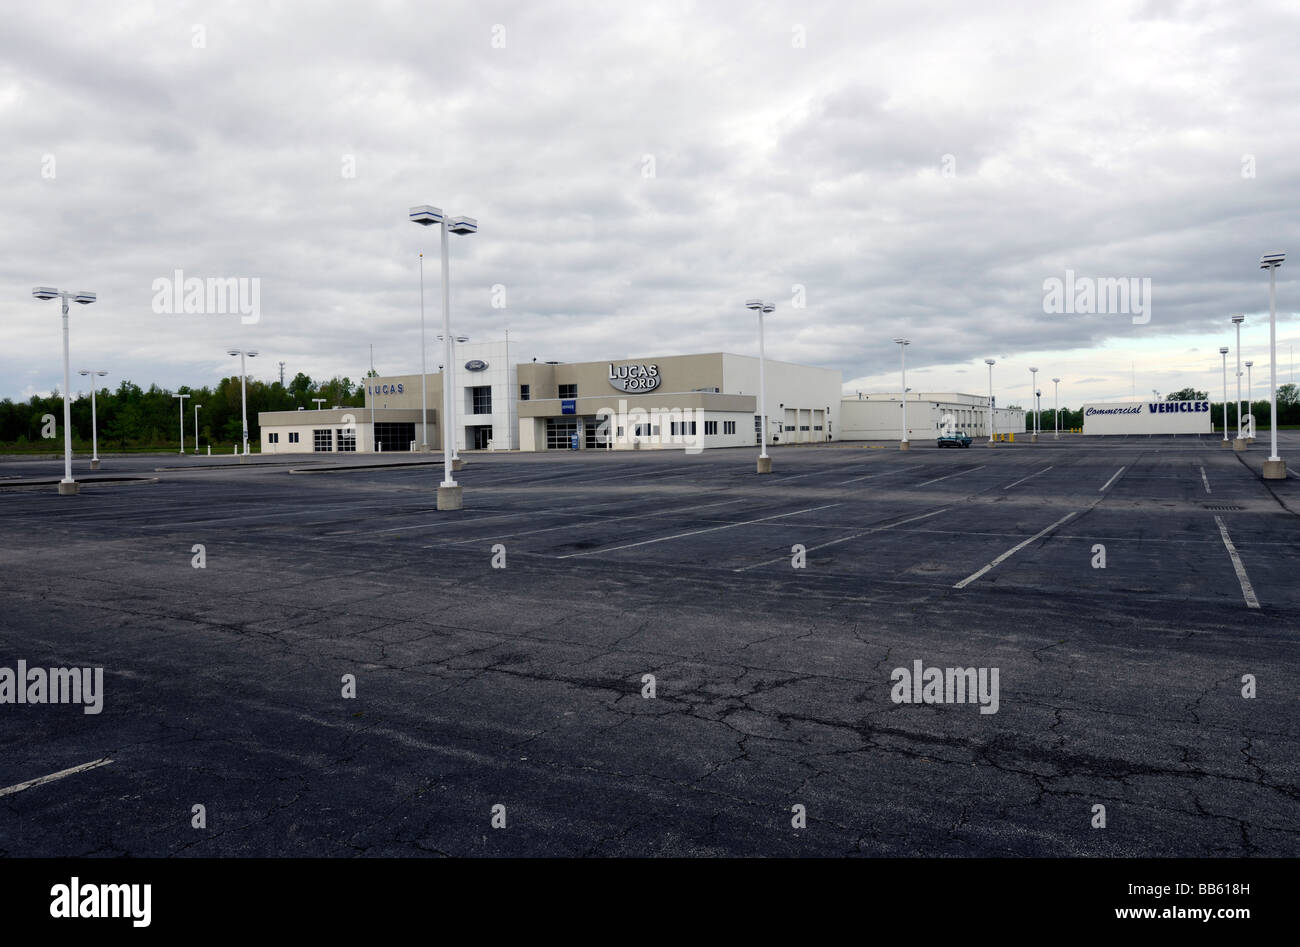 Car Dealerships In Lima Ohio >> Closed Ford Car Dealership In Lima Ohio Stock Photo 24104321 Alamy